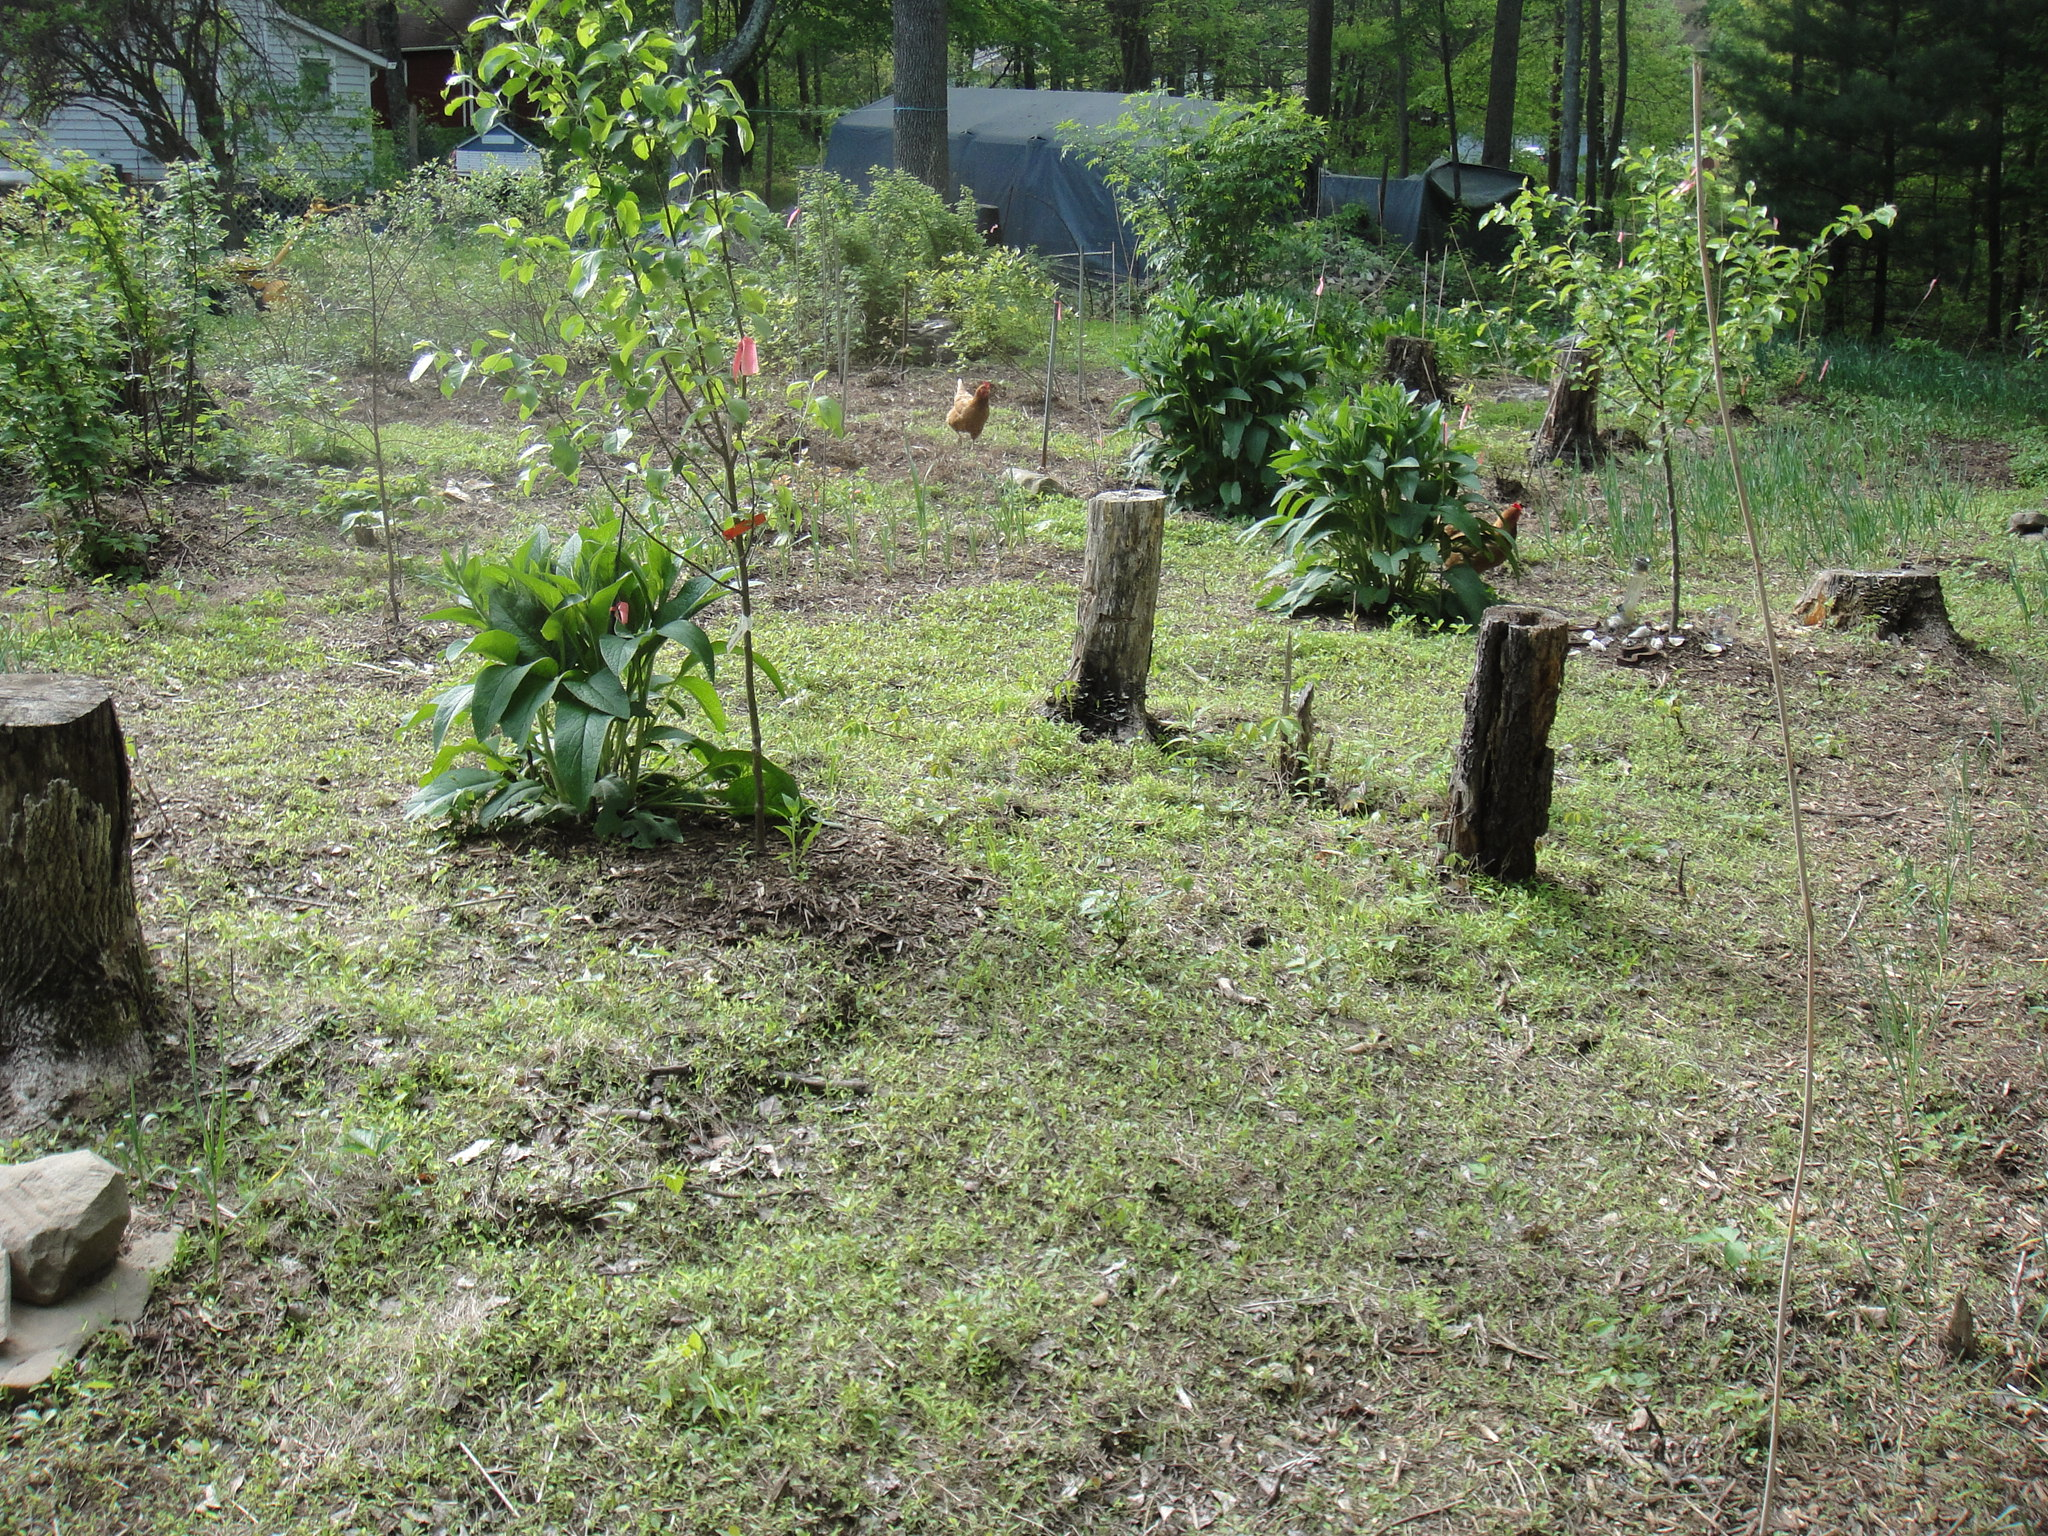 permaculture as a basis for a The permaculture garden is a lot more than an organic garden intelligent design uses free, sustainable energies and resources it is energy-wise and collaborative to minimise the impact of.